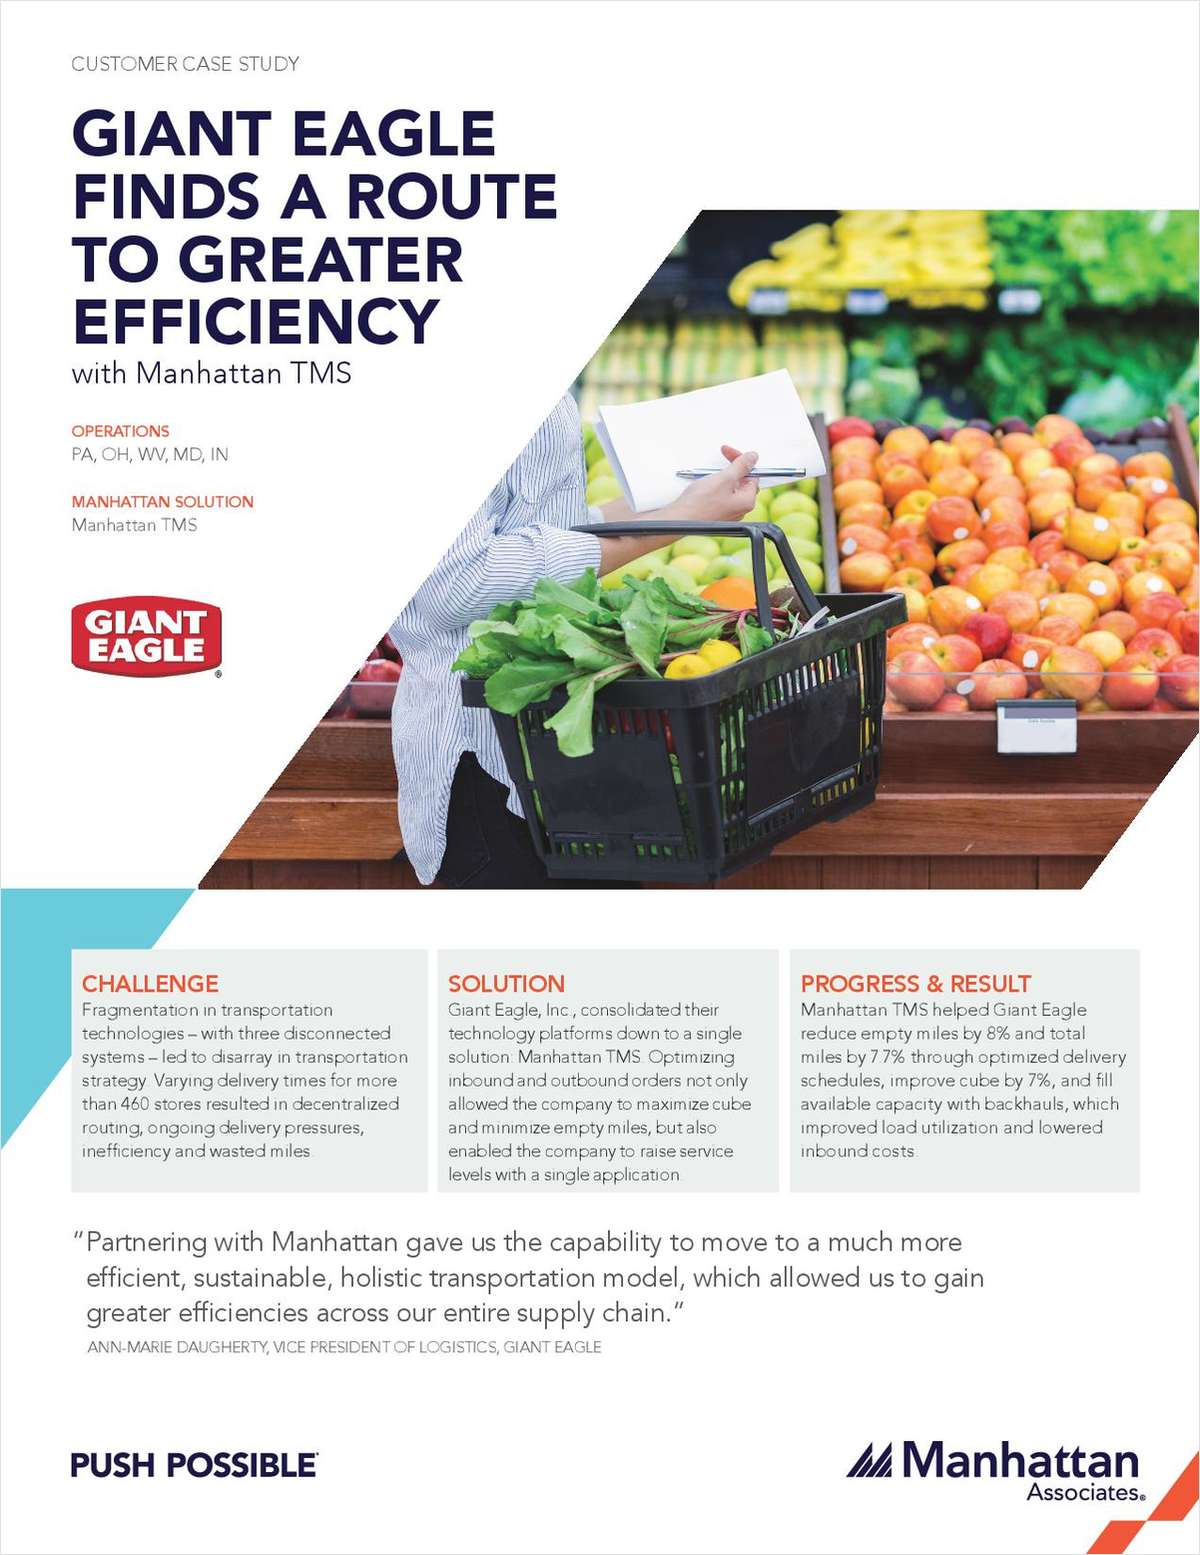 Case Study: How Giant Eagle Reduced Their Empty Miles by 8%